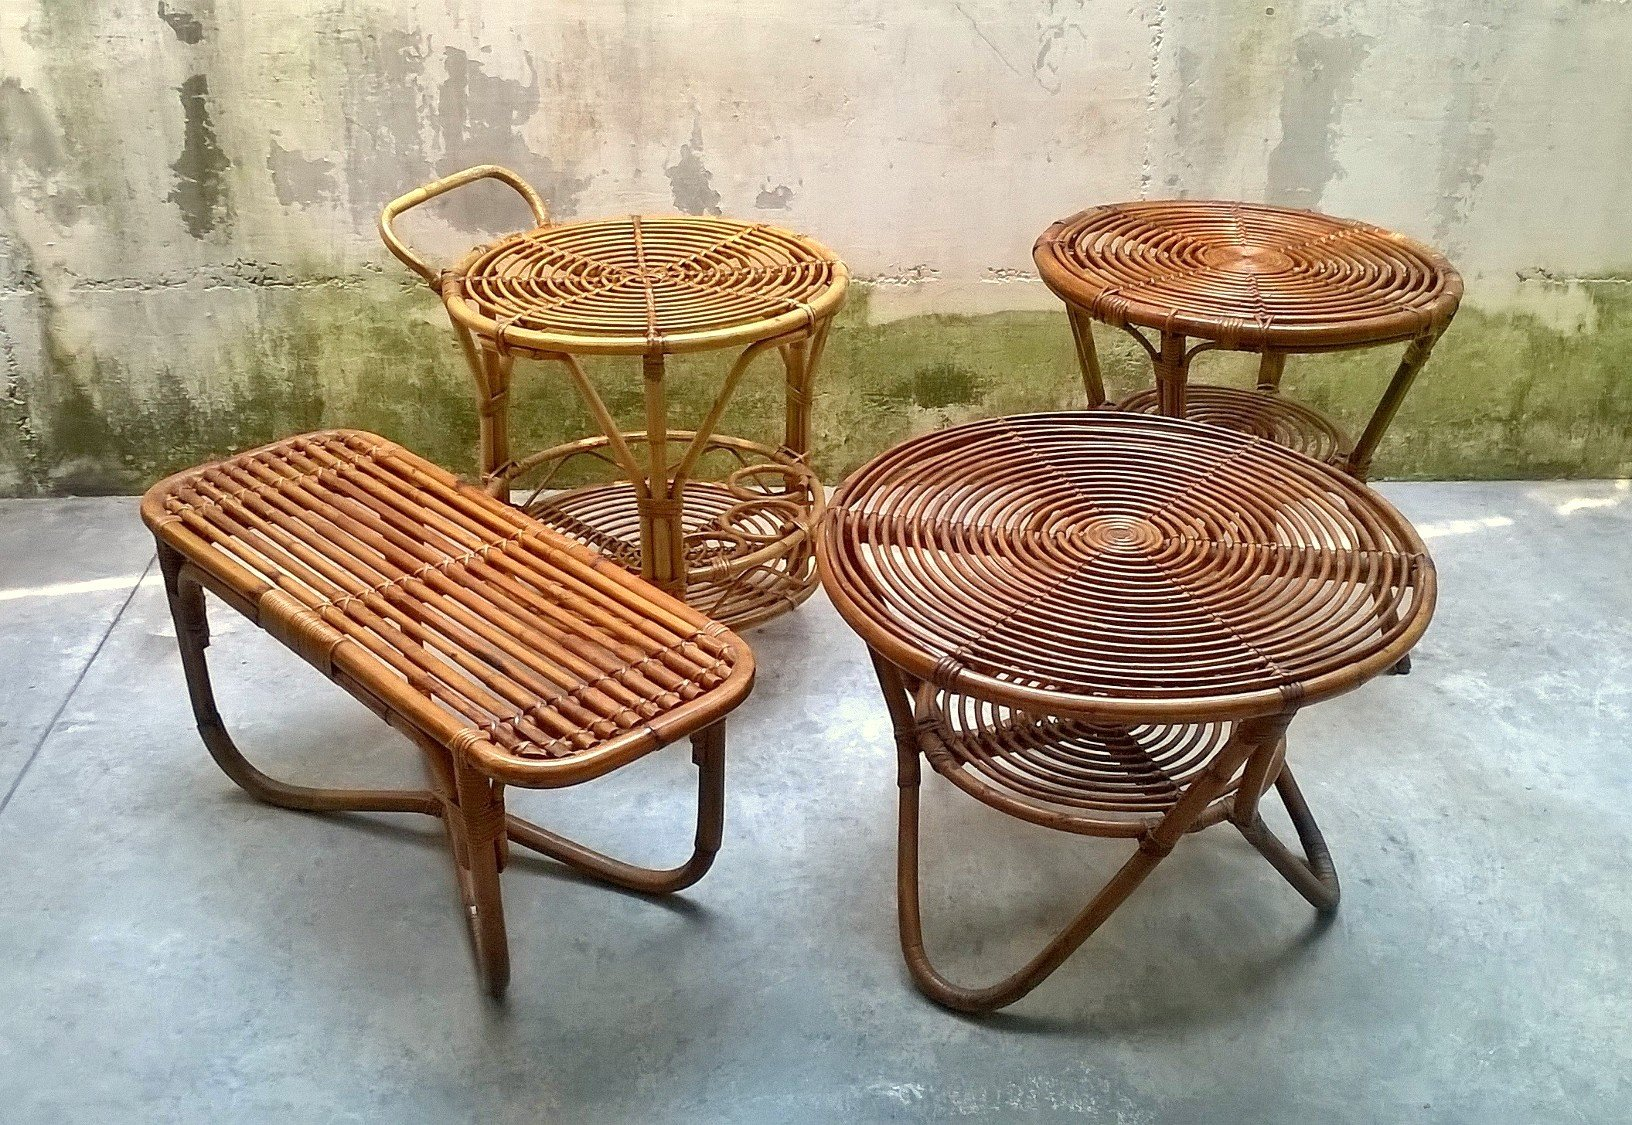 niedrige italienische rattan tische von pierantonio bonacina 1950er 4er set bei pamono kaufen. Black Bedroom Furniture Sets. Home Design Ideas